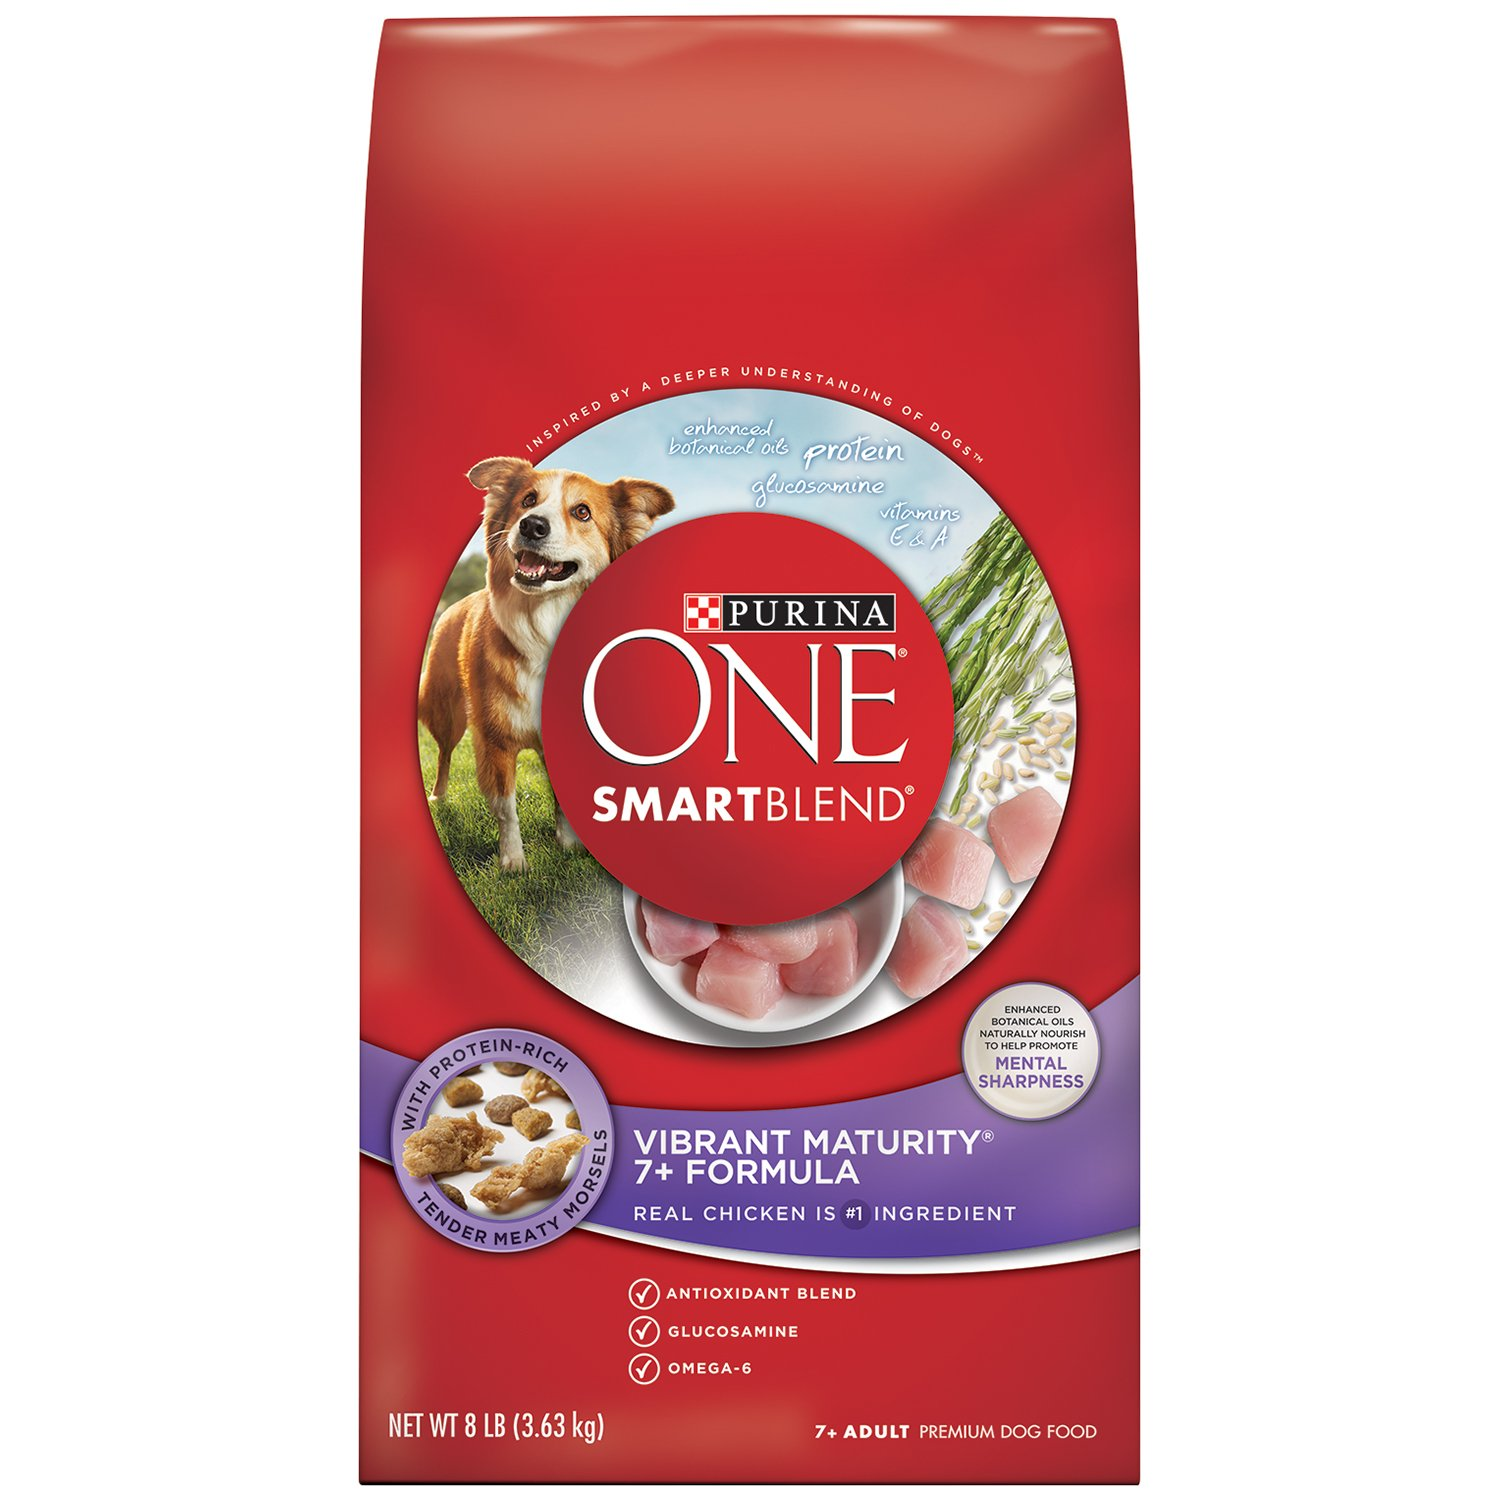 Purina ONE SmartBlend Vibrant Maturity 7+ Formula Dry Dog Food 8 lb. Bag